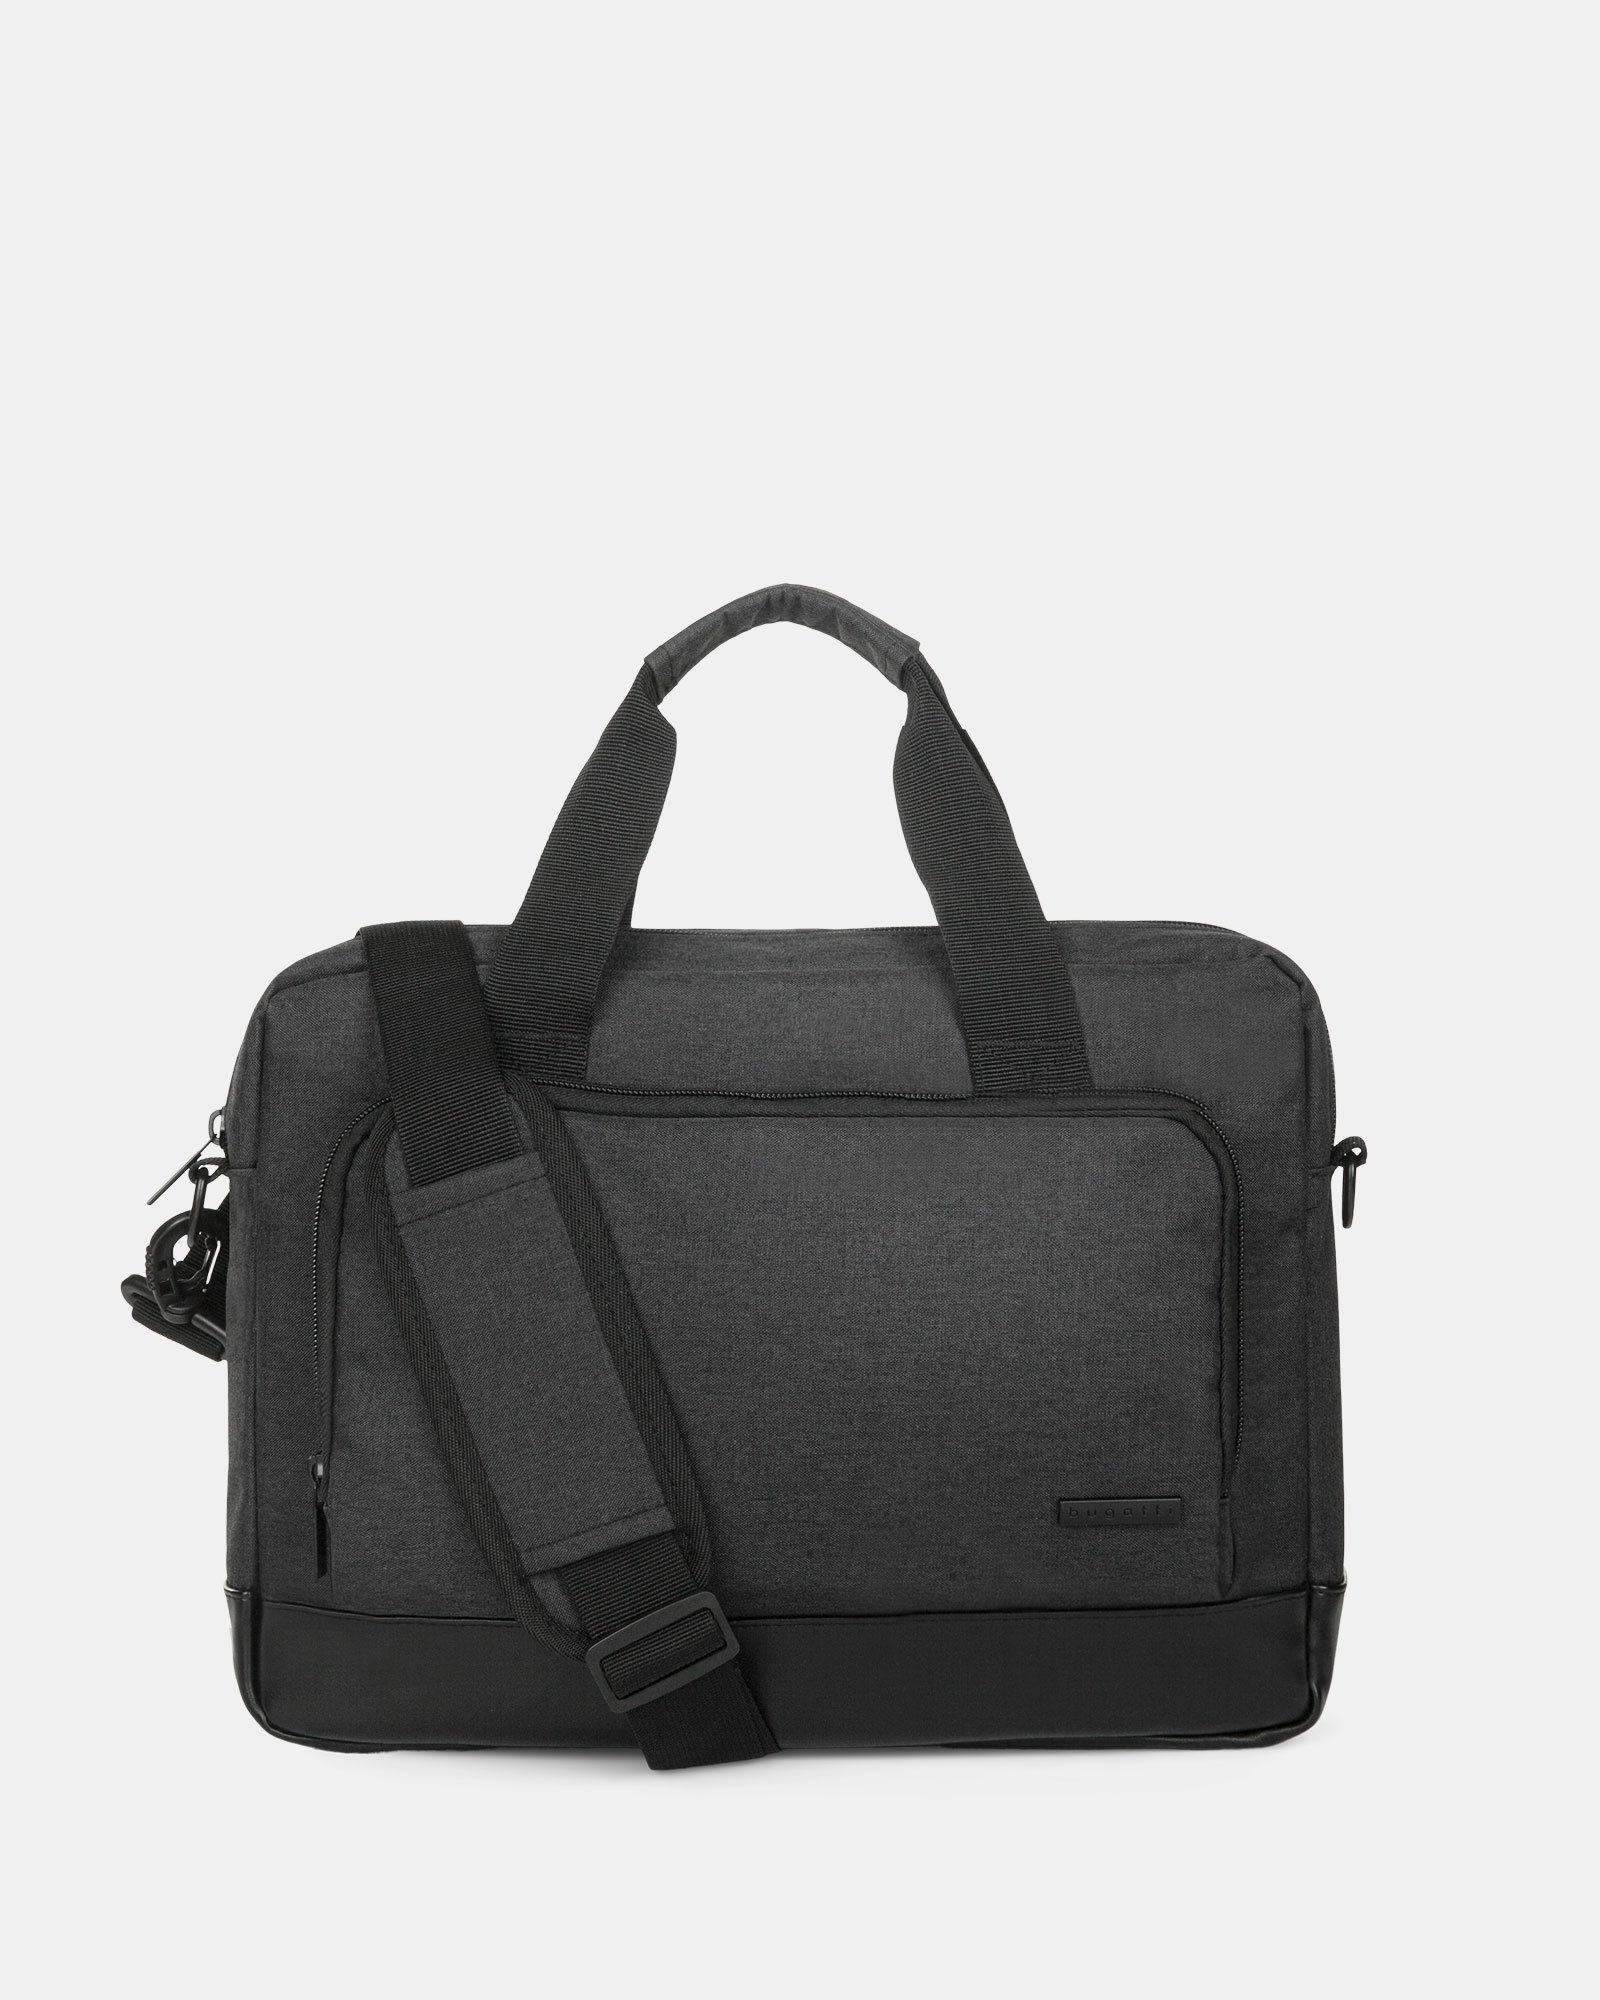 """TRAVELLER - Briefcase FOR 14"""" LAPTOP with Removable & comfortable shoulder strap - CHARCOAL - Bugatti - Zoom"""